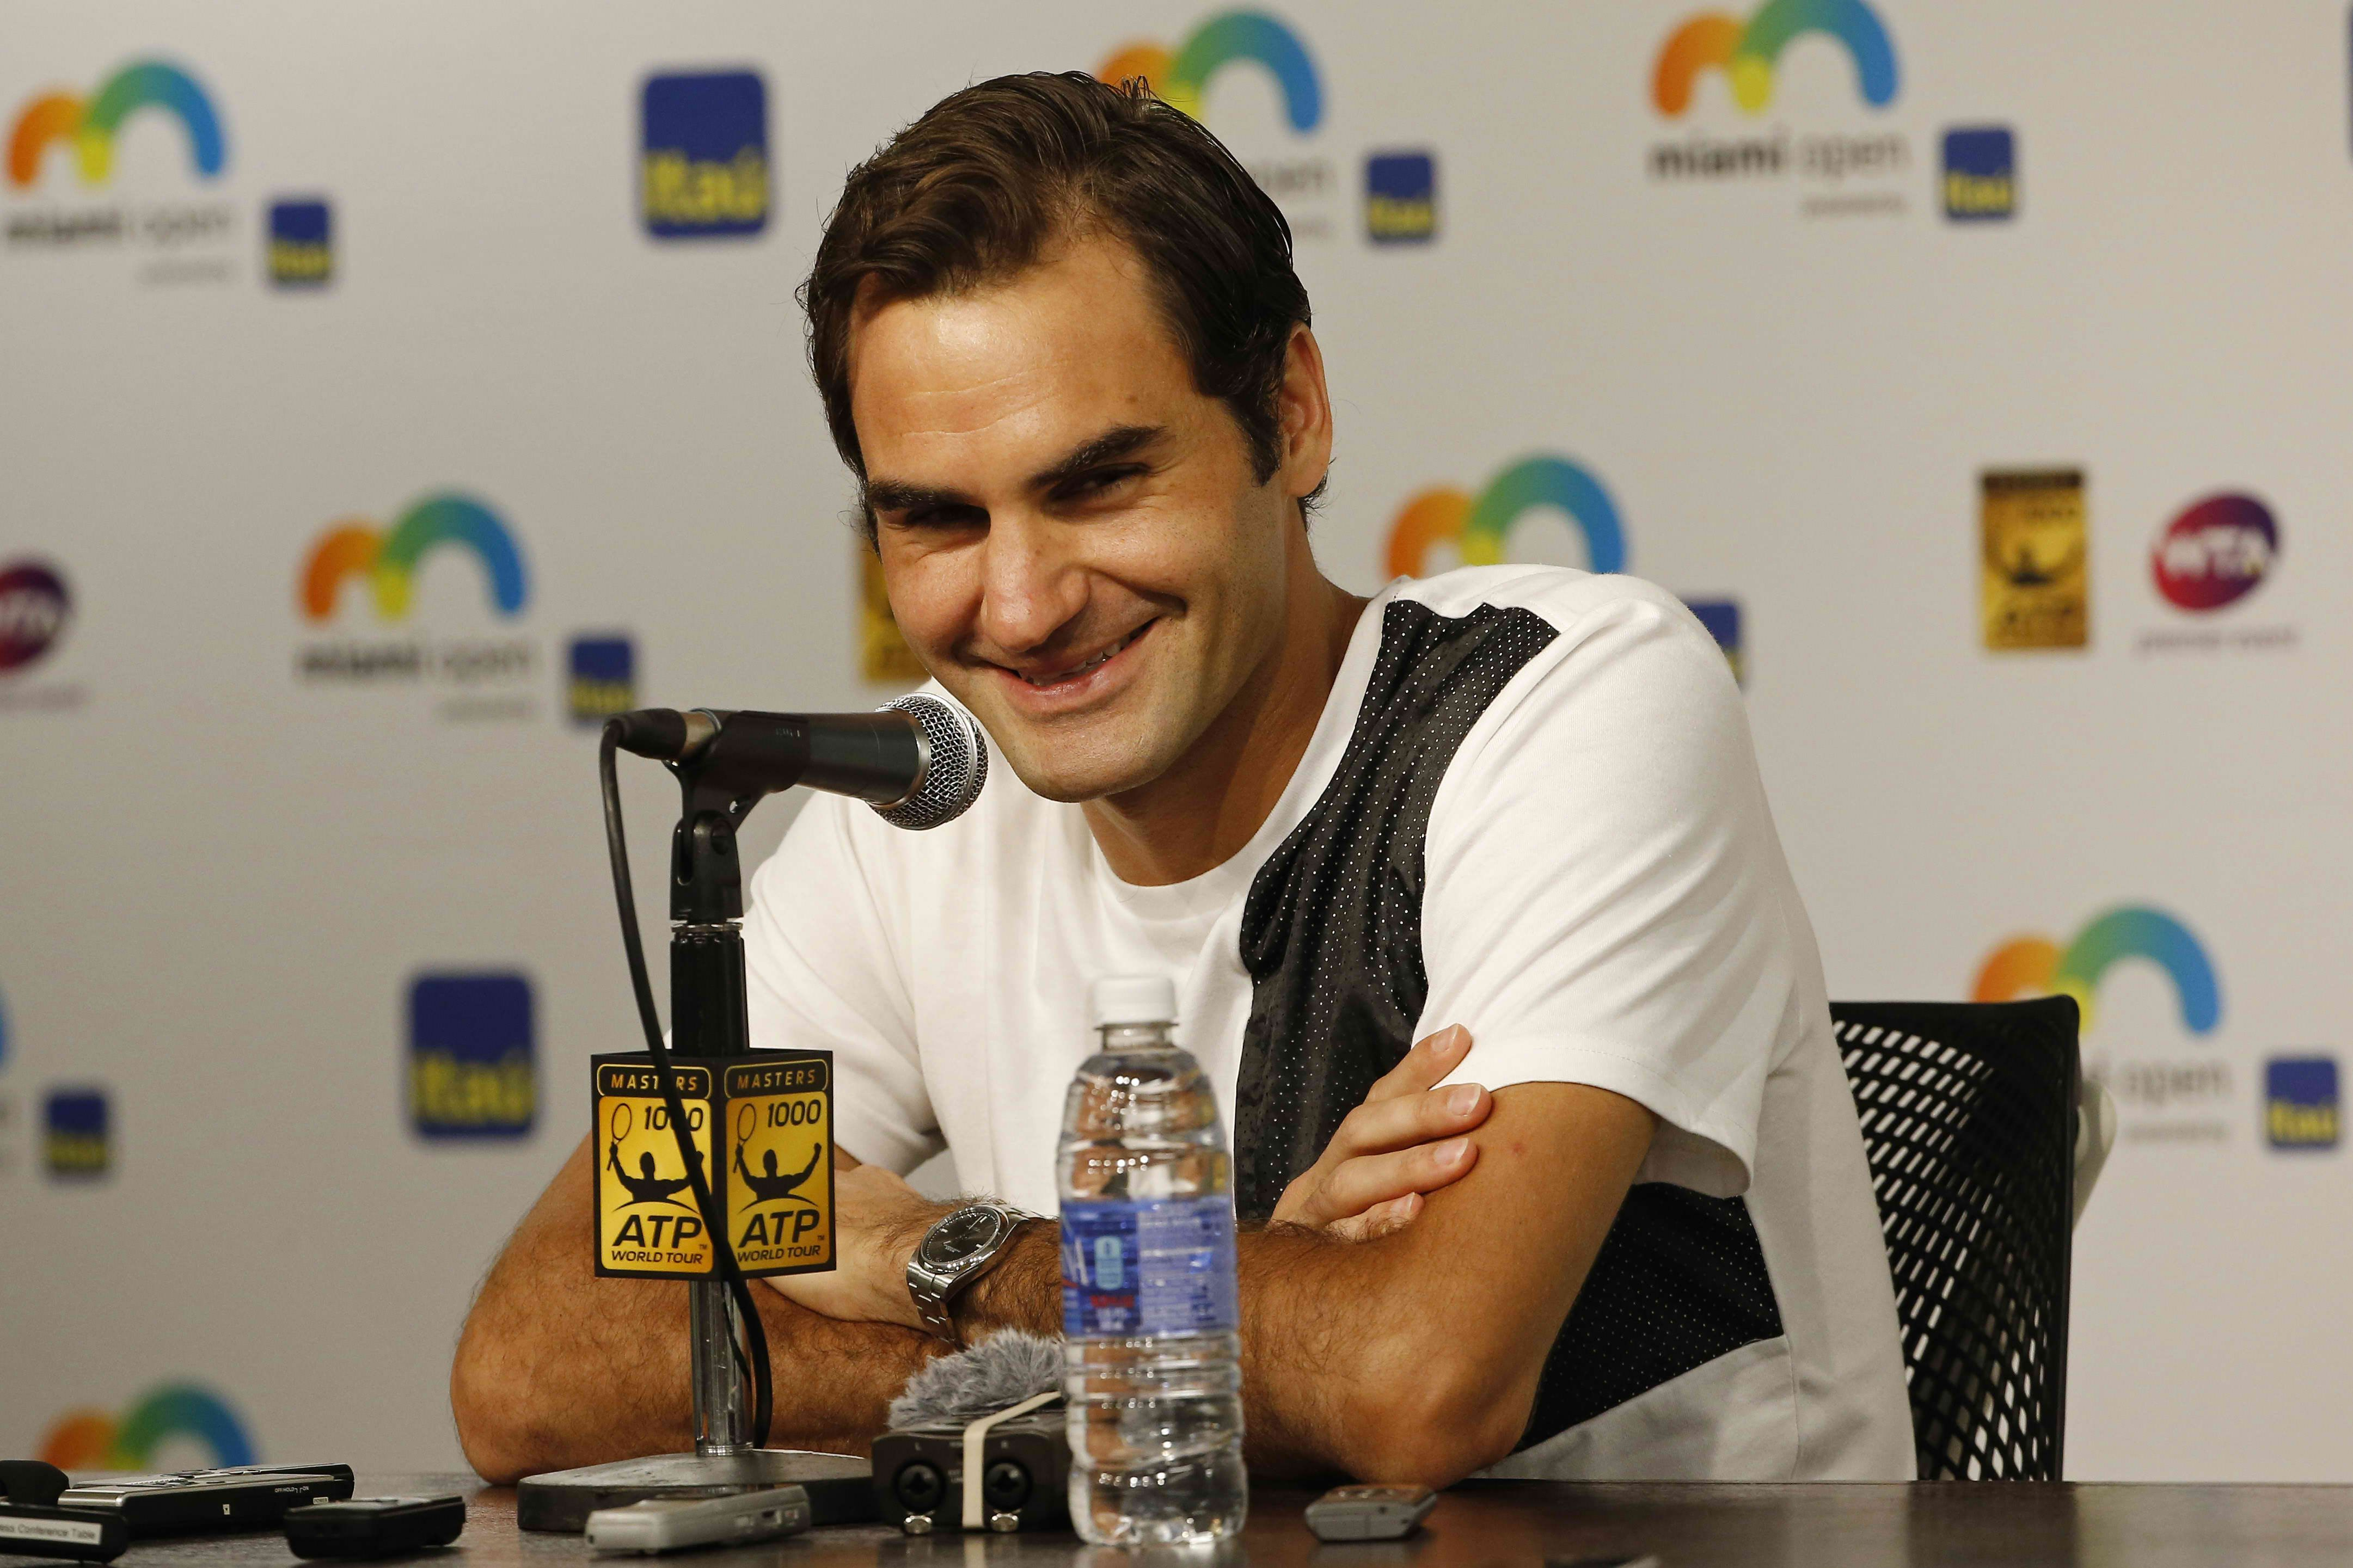 Roger Federer hurts back during practice in Madrid, sets sight on Italian Open - http://www.sportsrageous.com/tennis/roger-federer-hurts-back-practice-madrid-sets-sight-italian-open/19897/